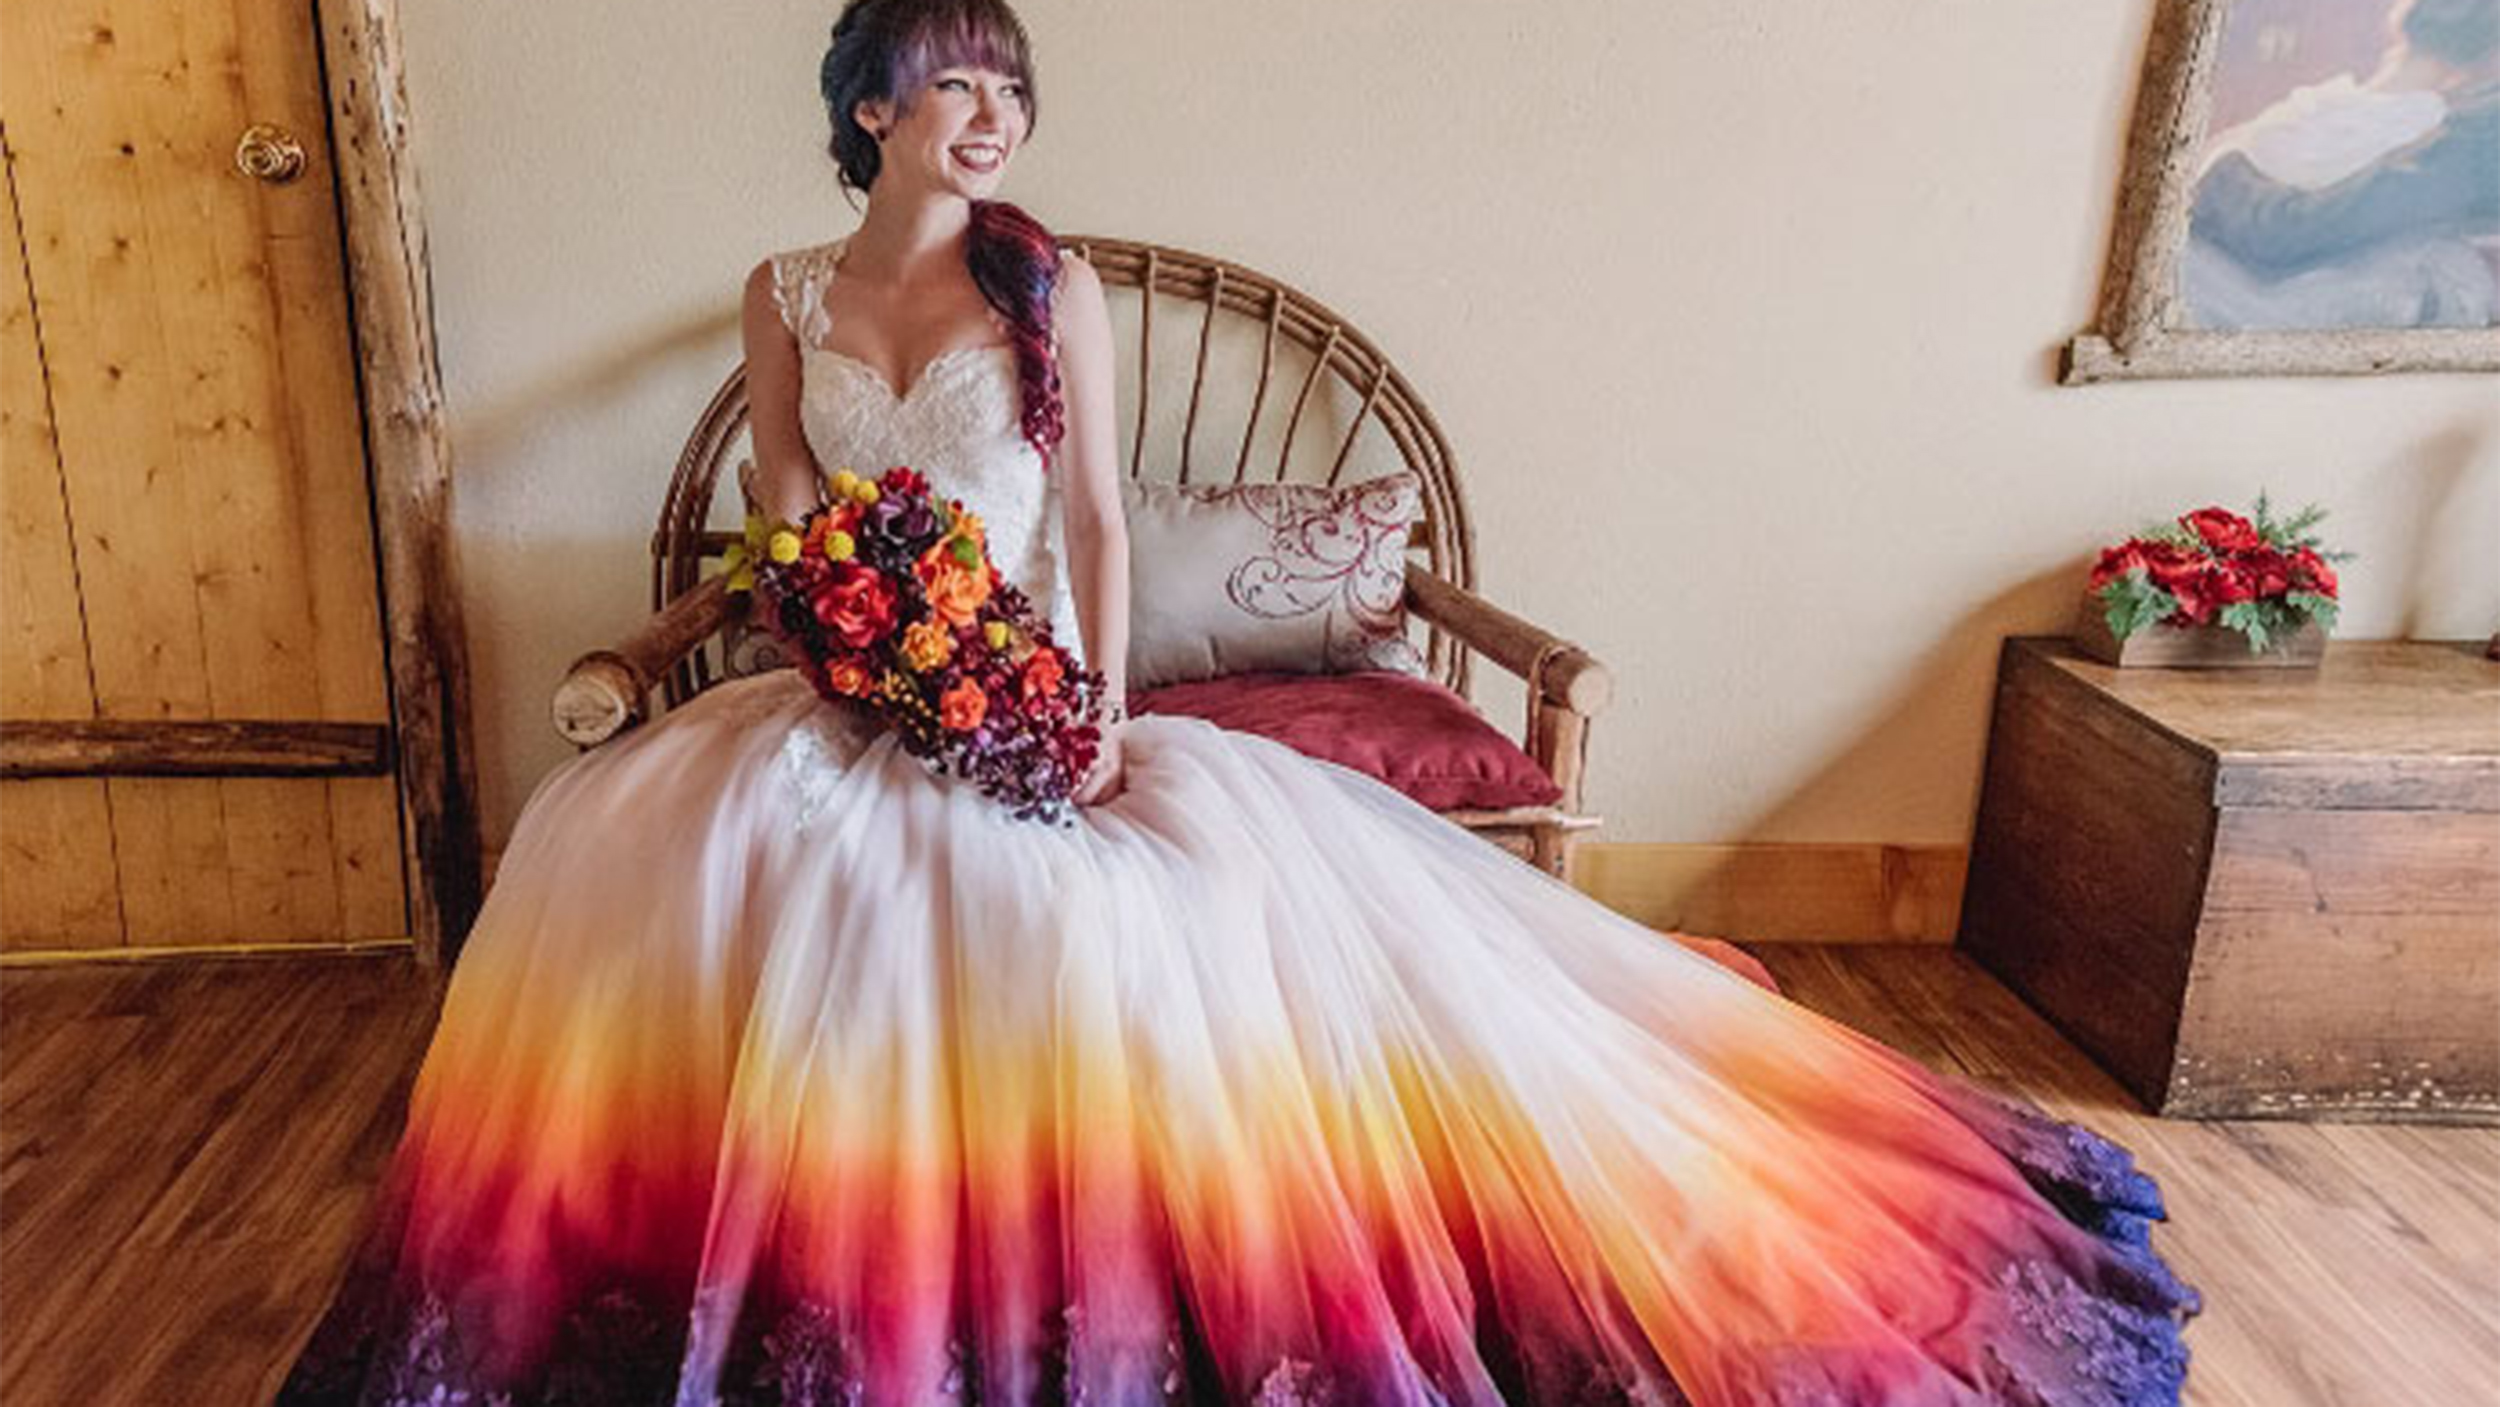 dip-dyed, colorful wedding dresses are the new bridal trend - today.com hukjttf